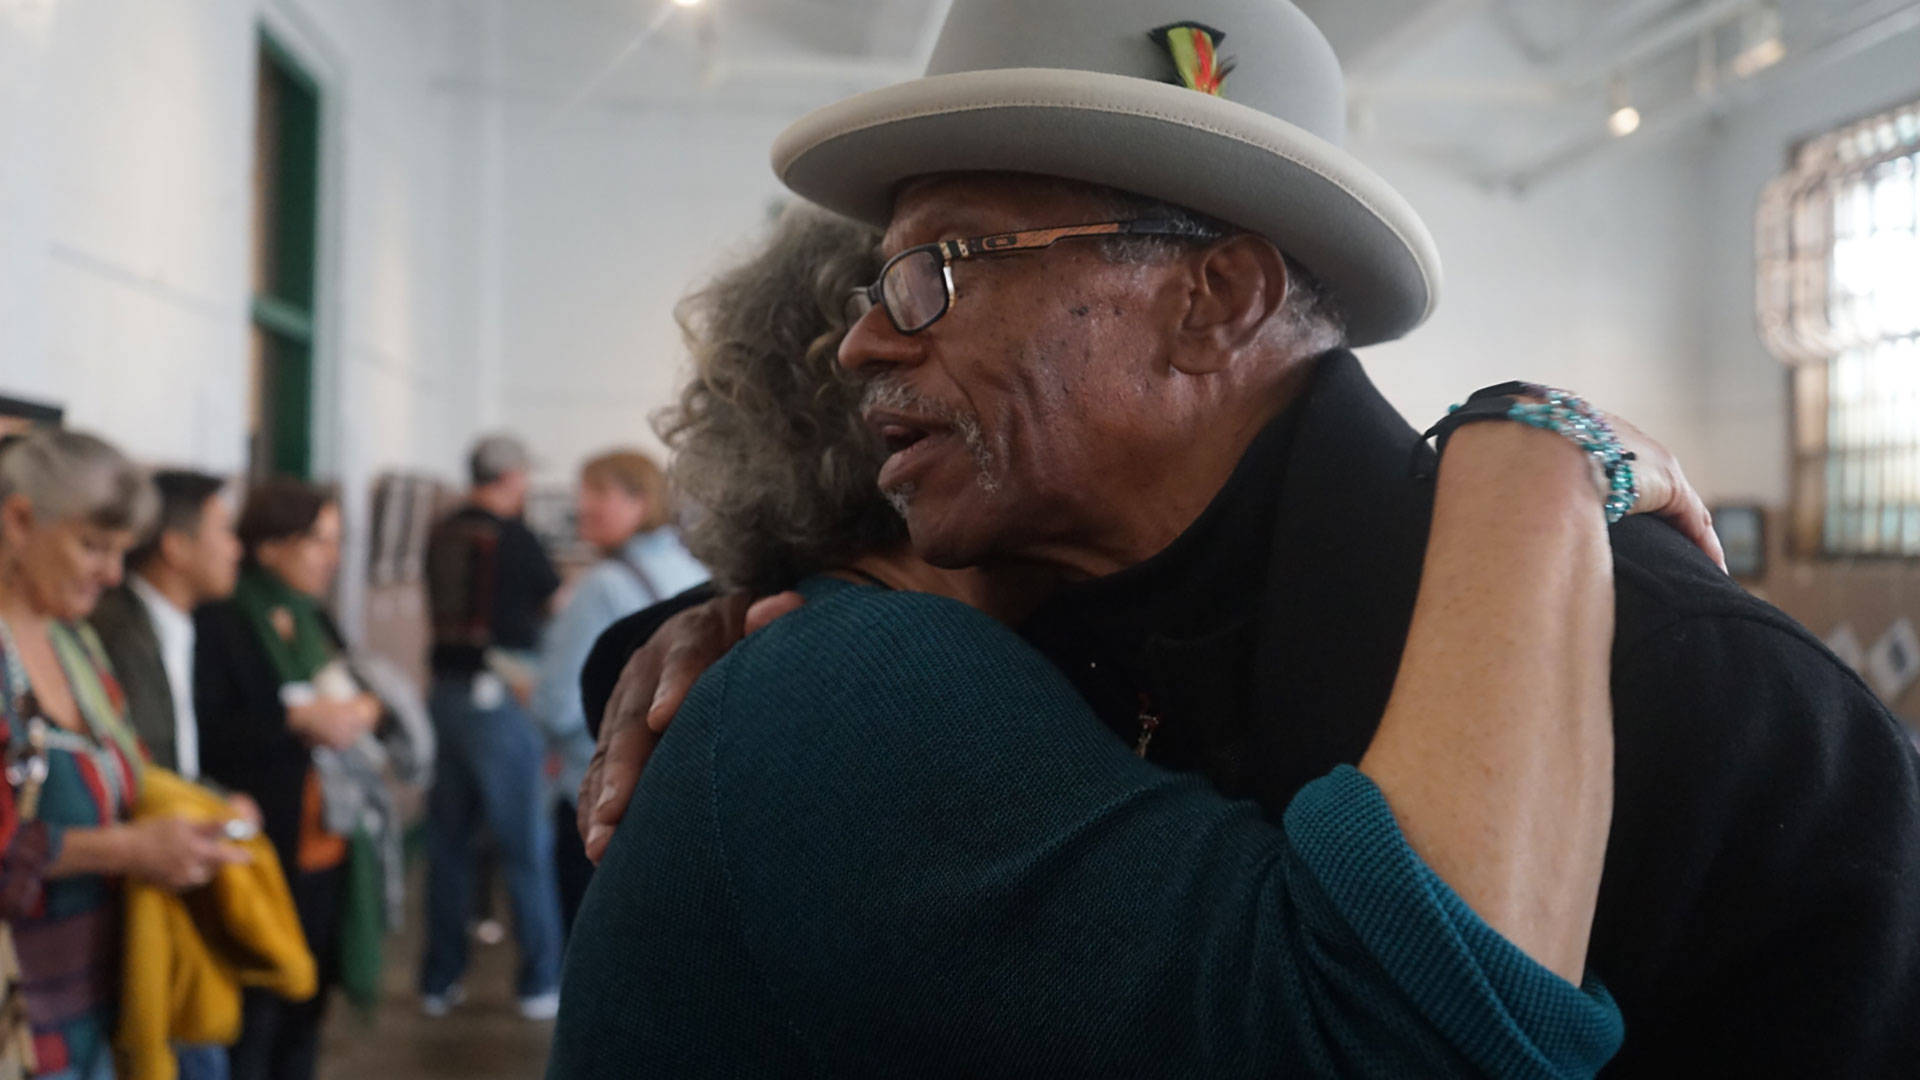 Watani Stiner visits Alcatraz State Prison in August. While incarcerated at San Quentin, Stiner took part in Brothers in Pens, a writing and art program.